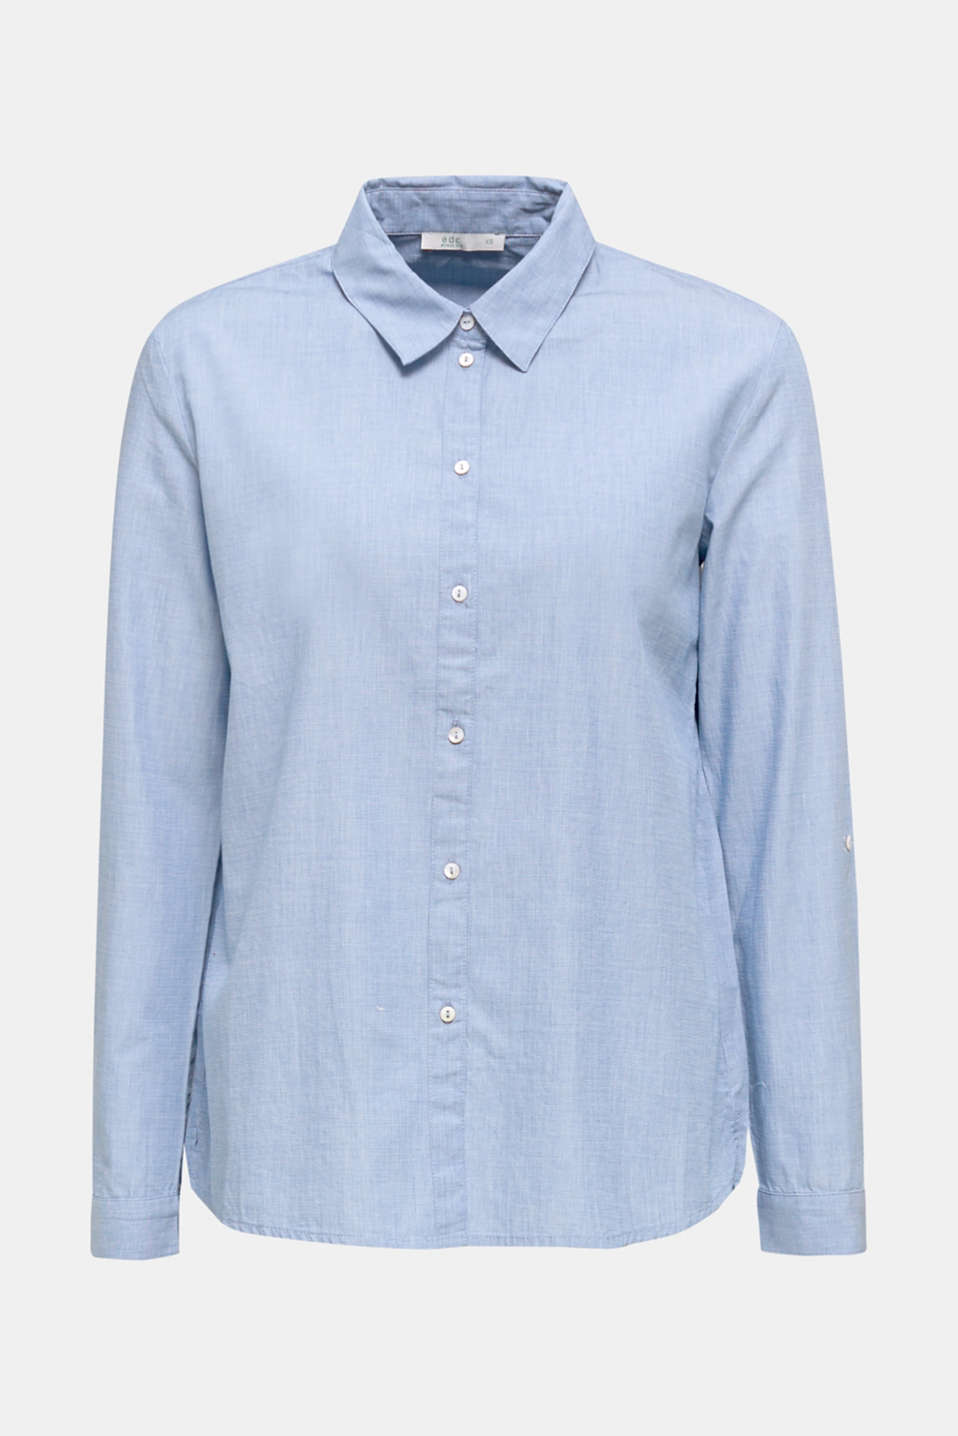 Shirt blouse made of chambray fabric, 100% cotton, LIGHT BLUE, detail image number 7